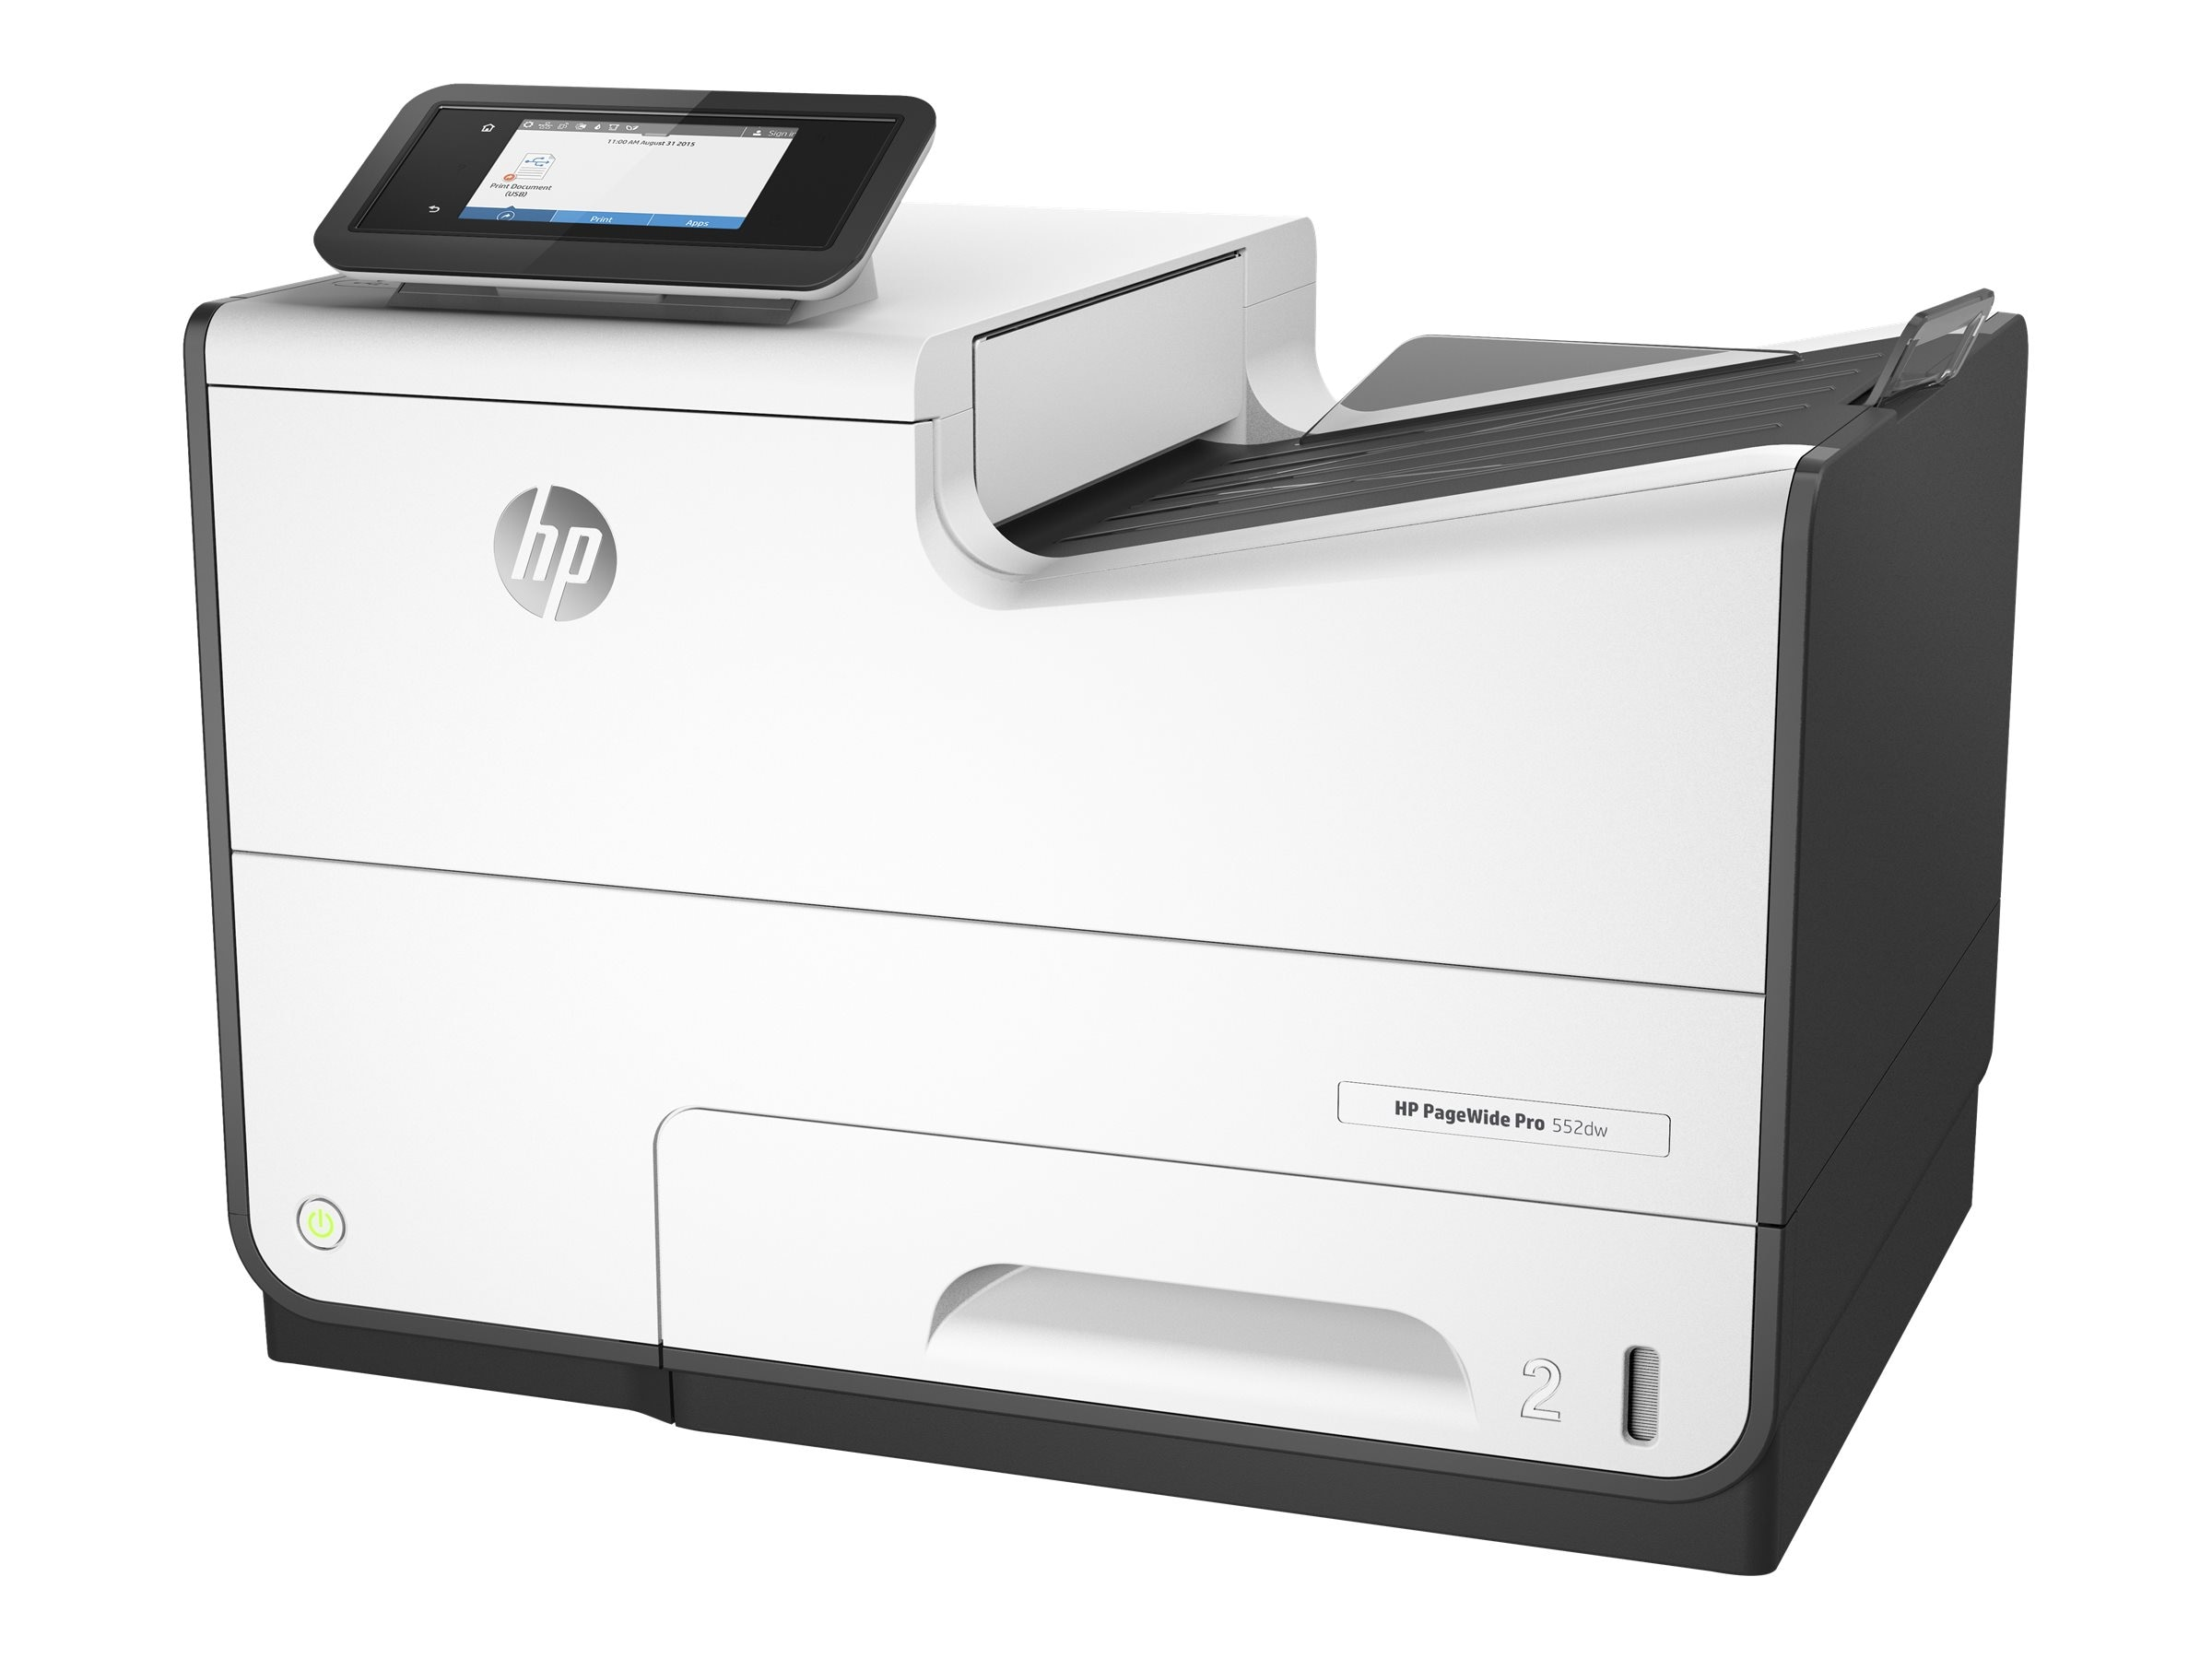 HP PageWide Pro 552dw Printer, D3Q17A#B1H, 31807780, Printers - Ink-jet